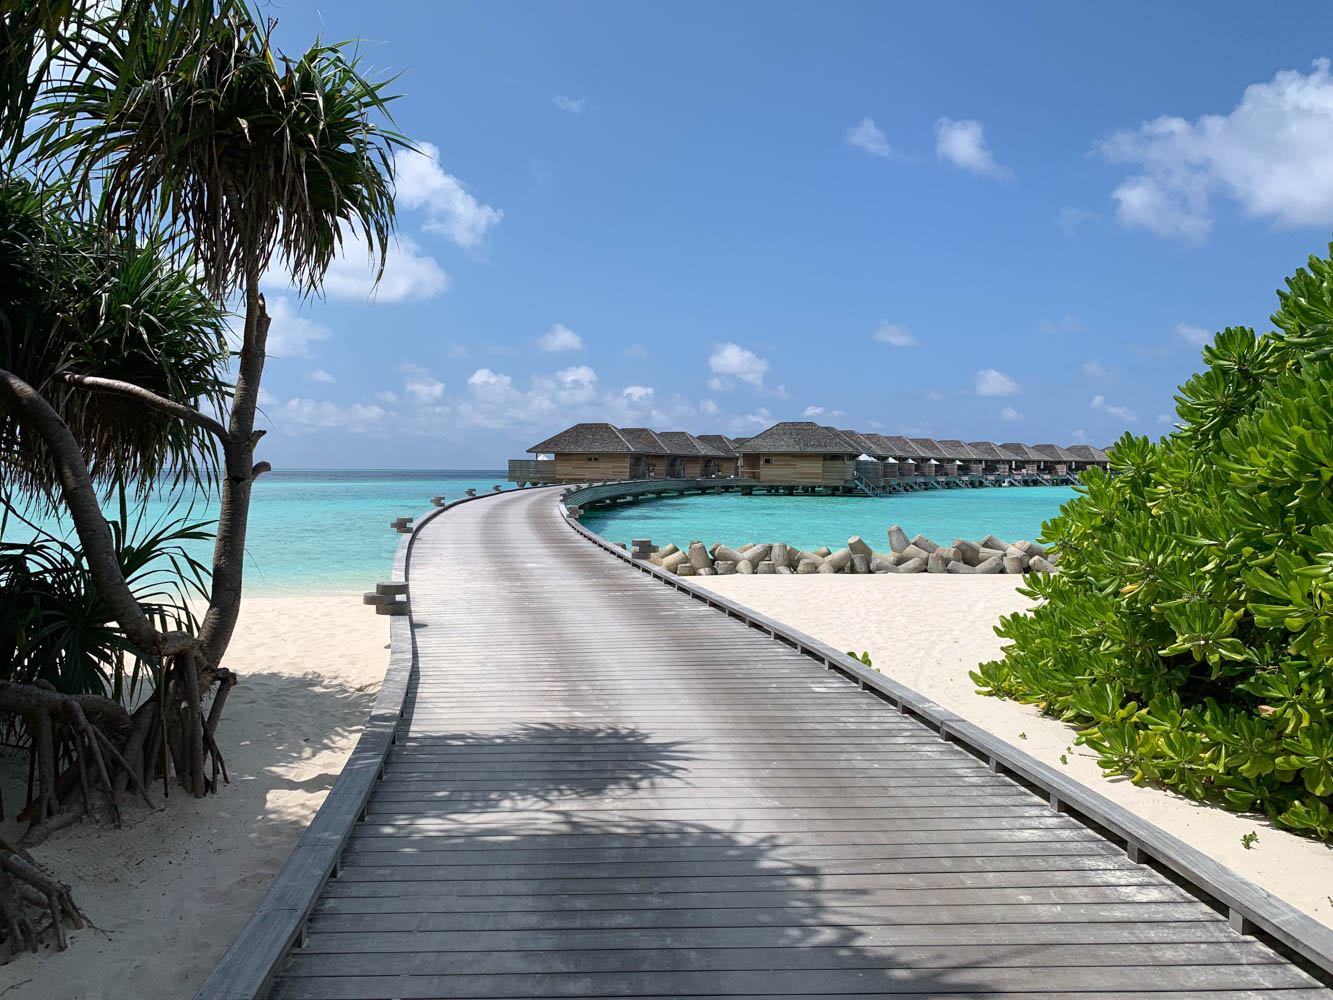 Maldives_Resort_Honeymoon_Hurawalhi_MaldivesTravelAdvisor.jpg